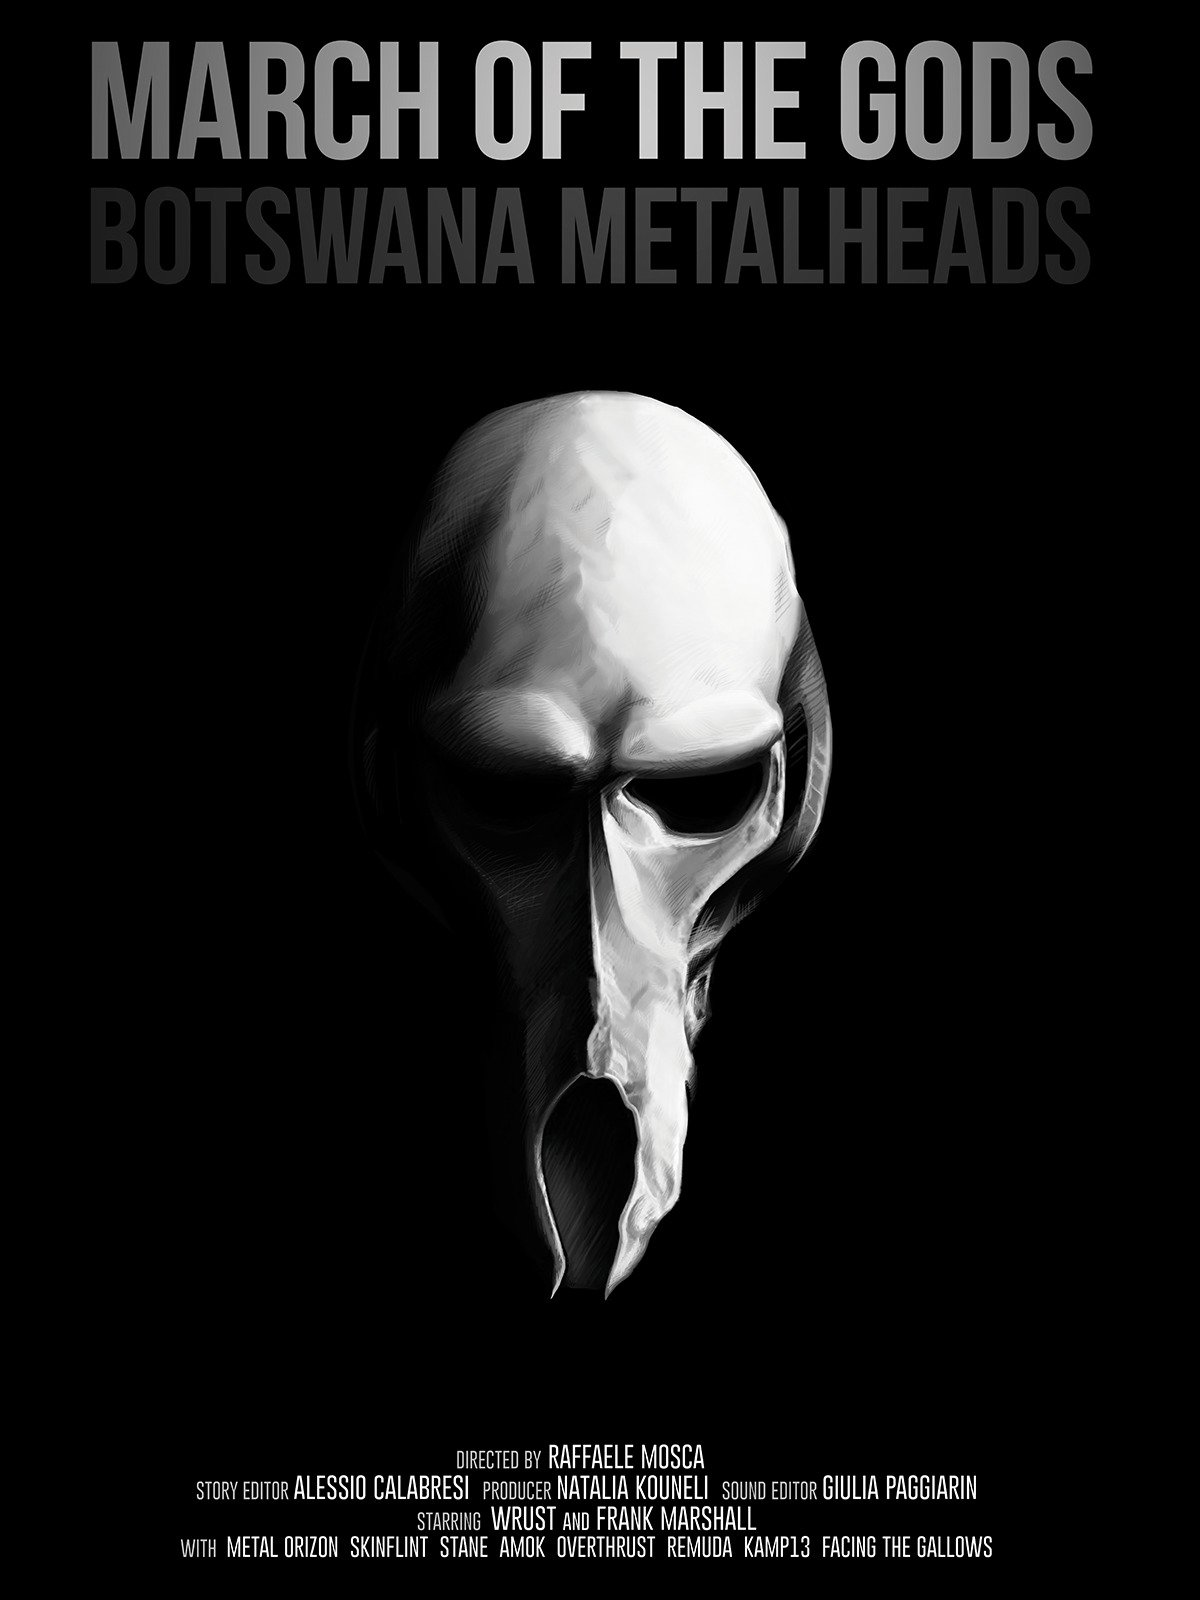 March Of The Gods Botswana Metalheads on Amazon Prime Instant Video UK